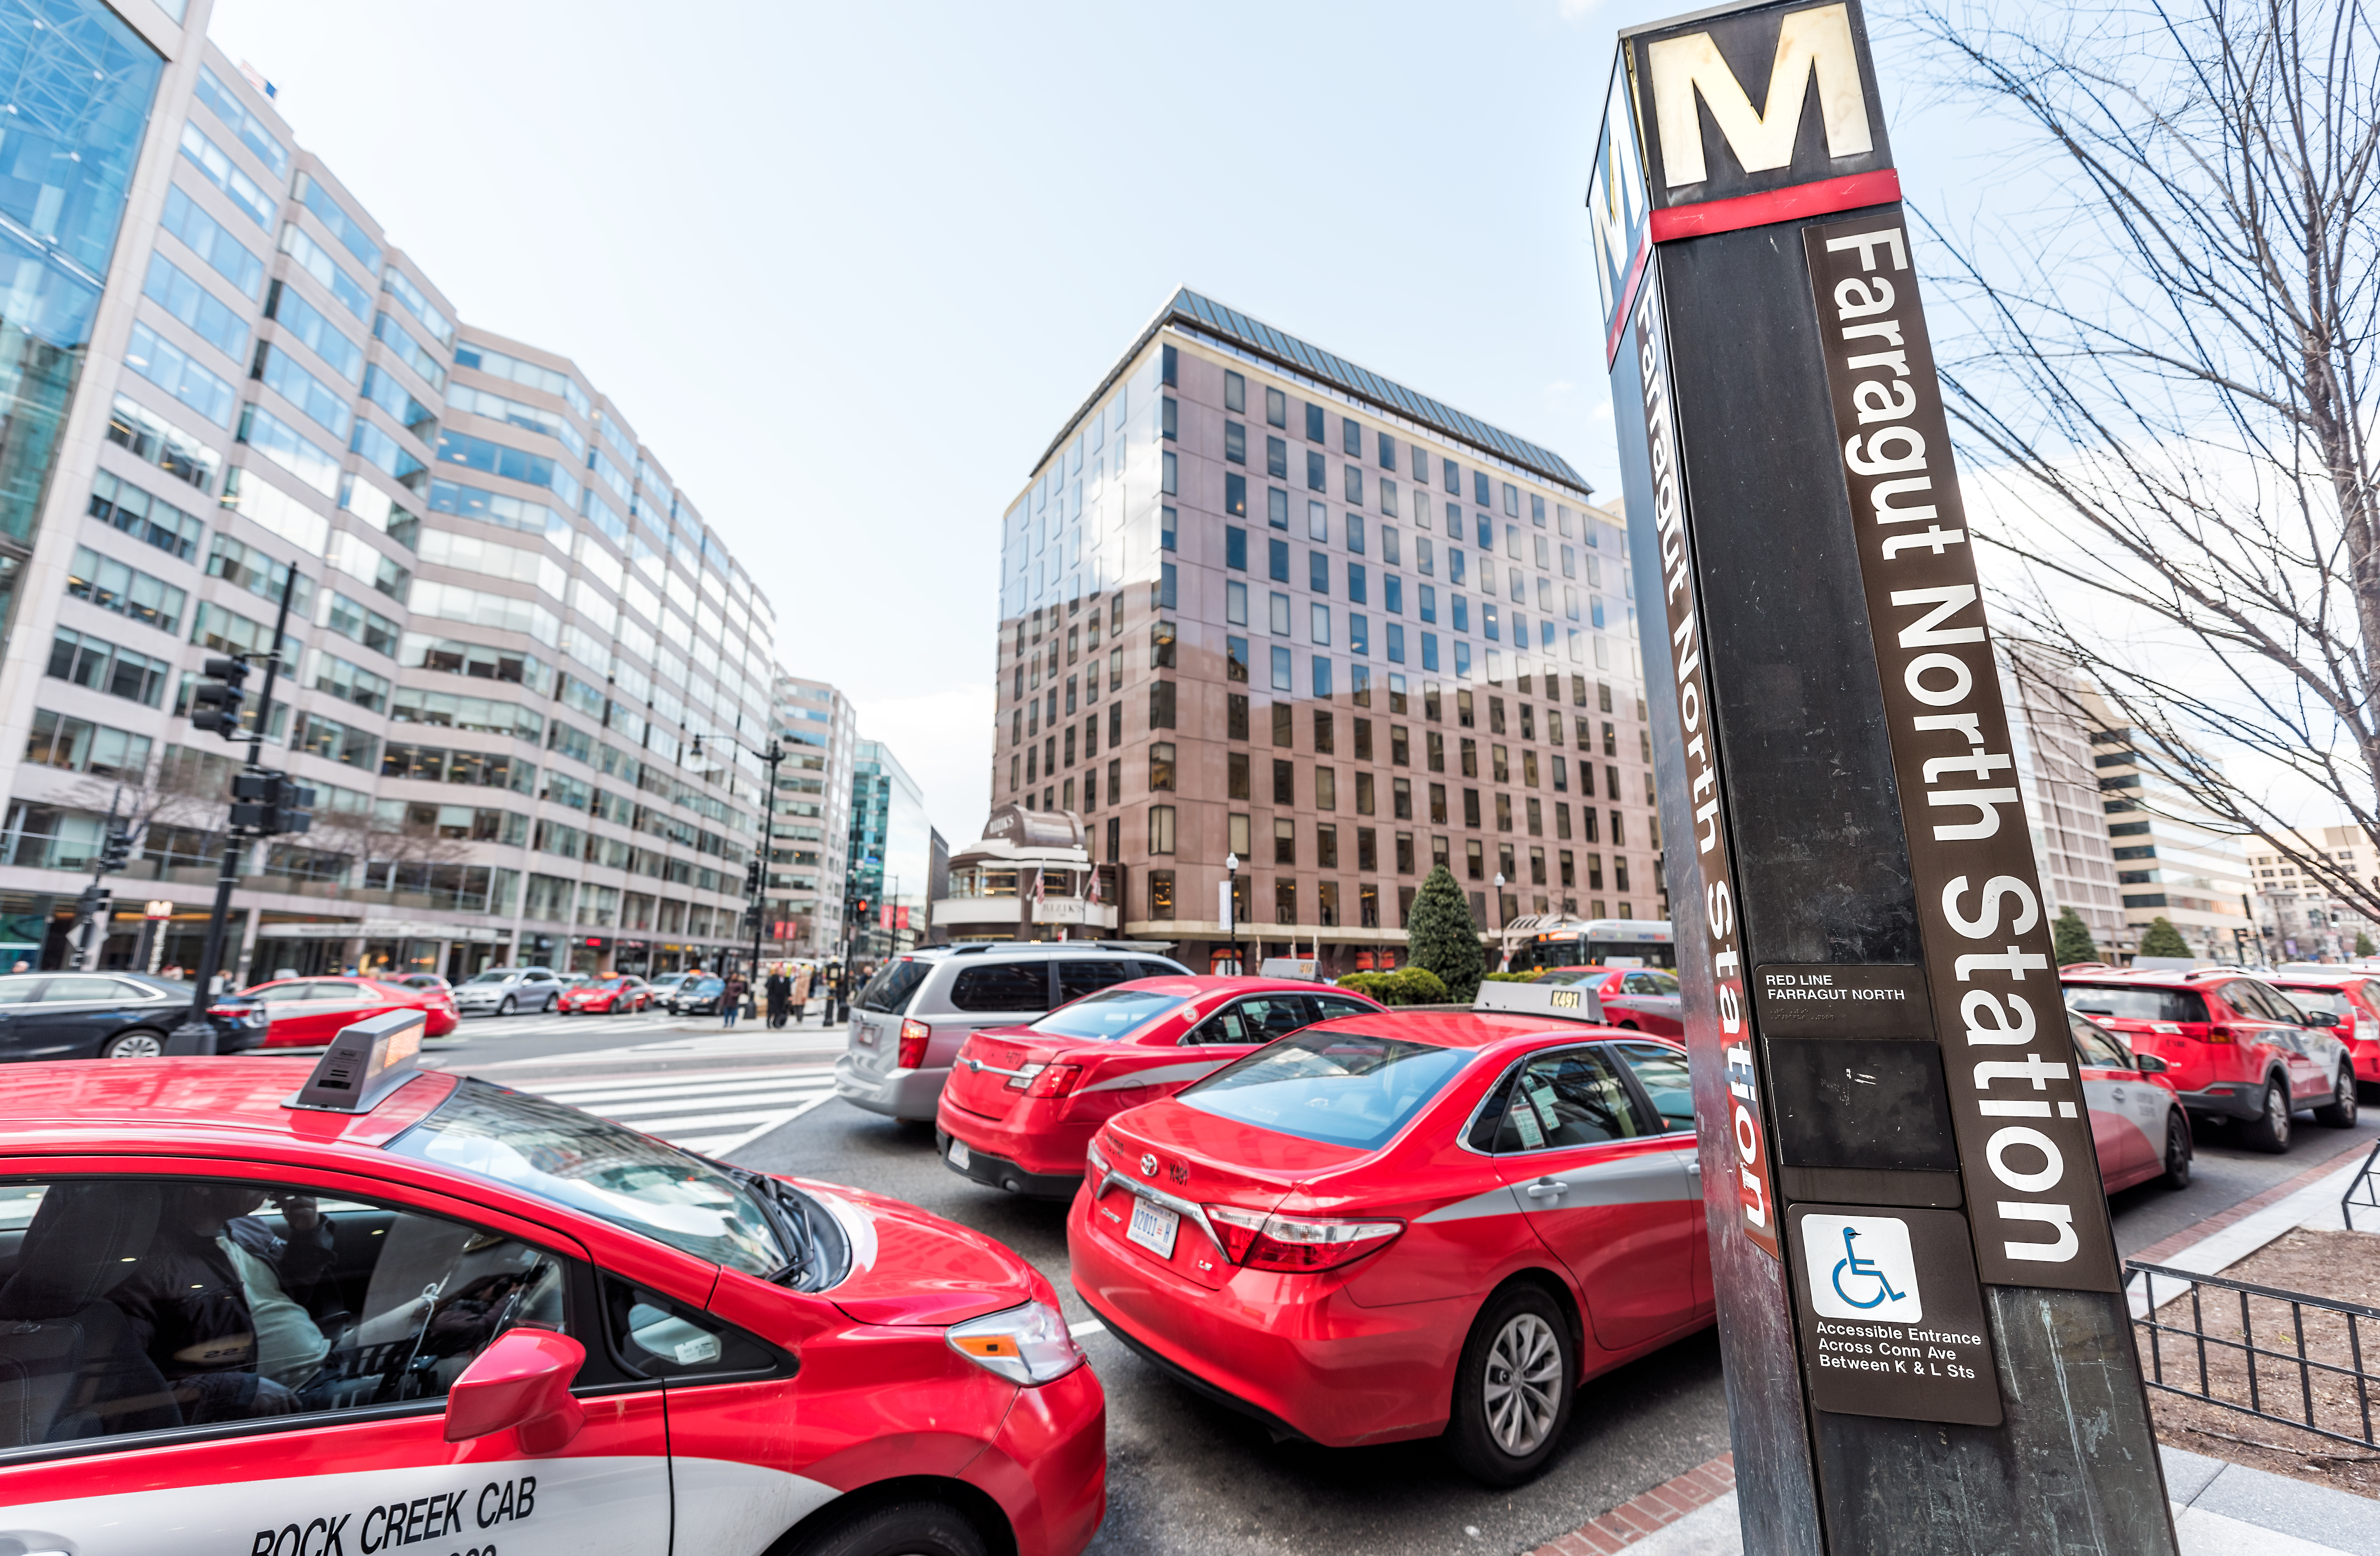 A sign for the Farragut North station on Metro's Red Line. There are several red taxis and office buildings in the background.